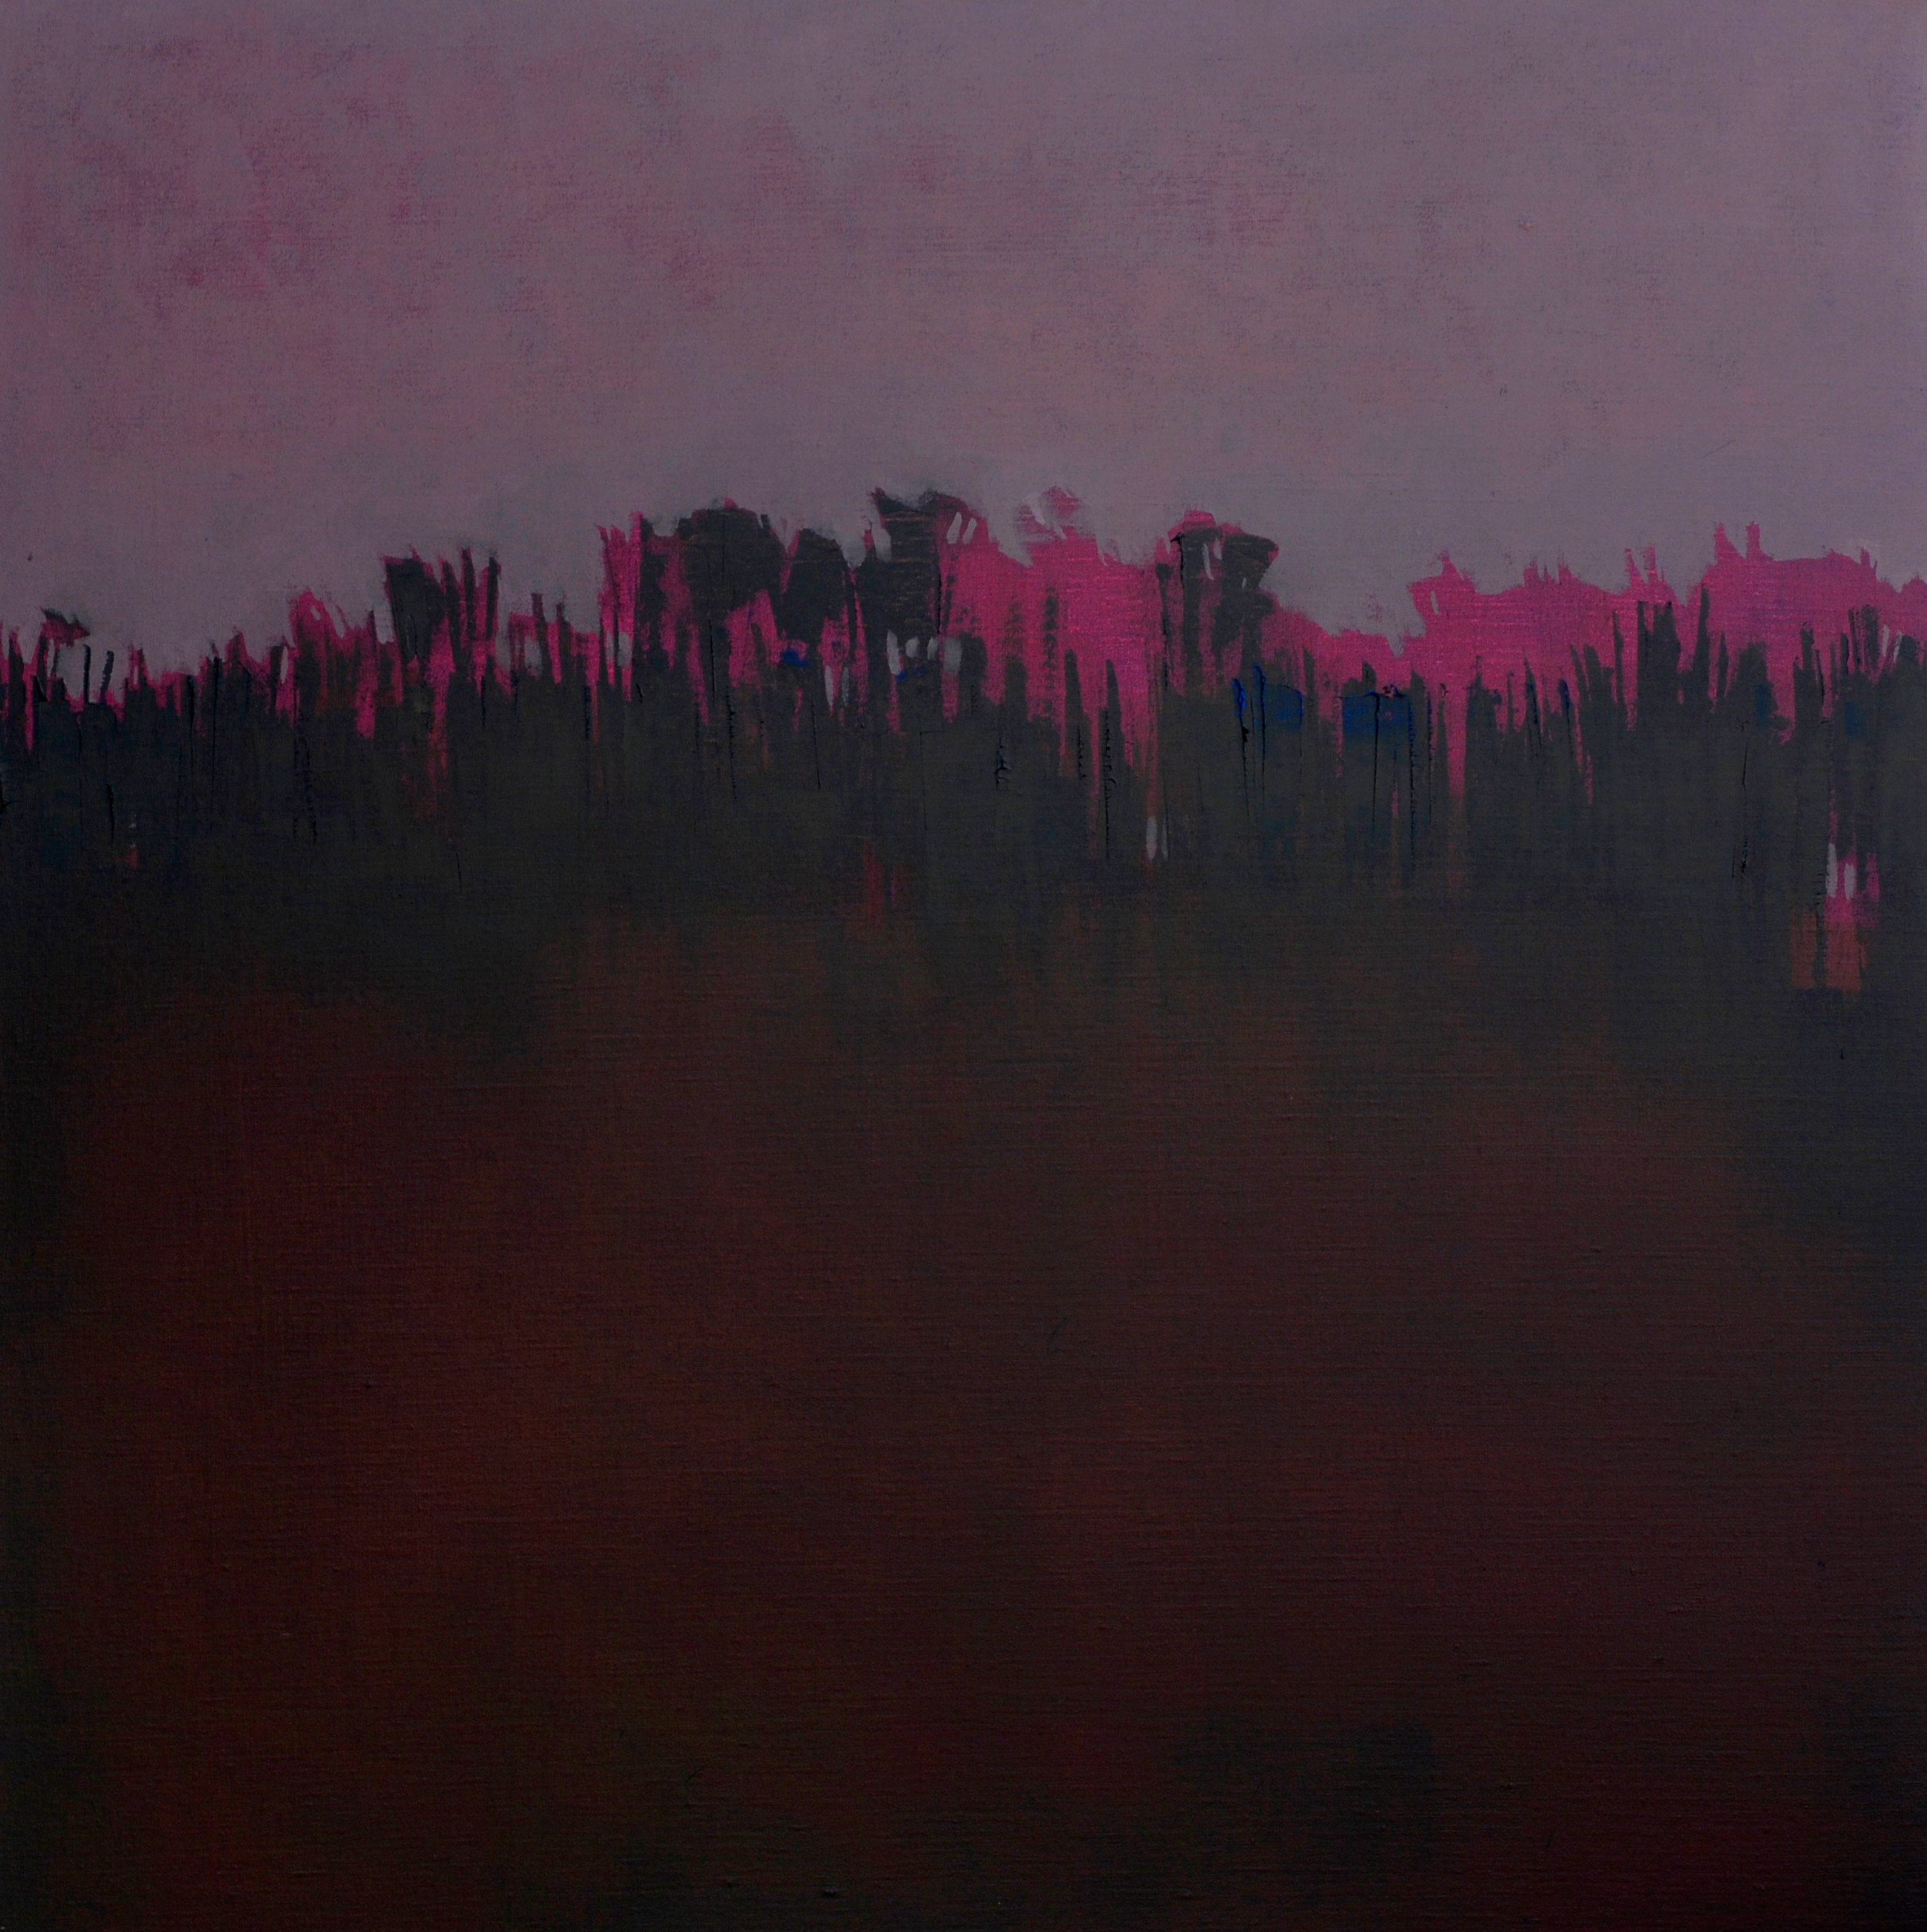 Morado Atardecer  - 2014 - Oil on canvas - 20 x 20 inches / 50 x 50 cm